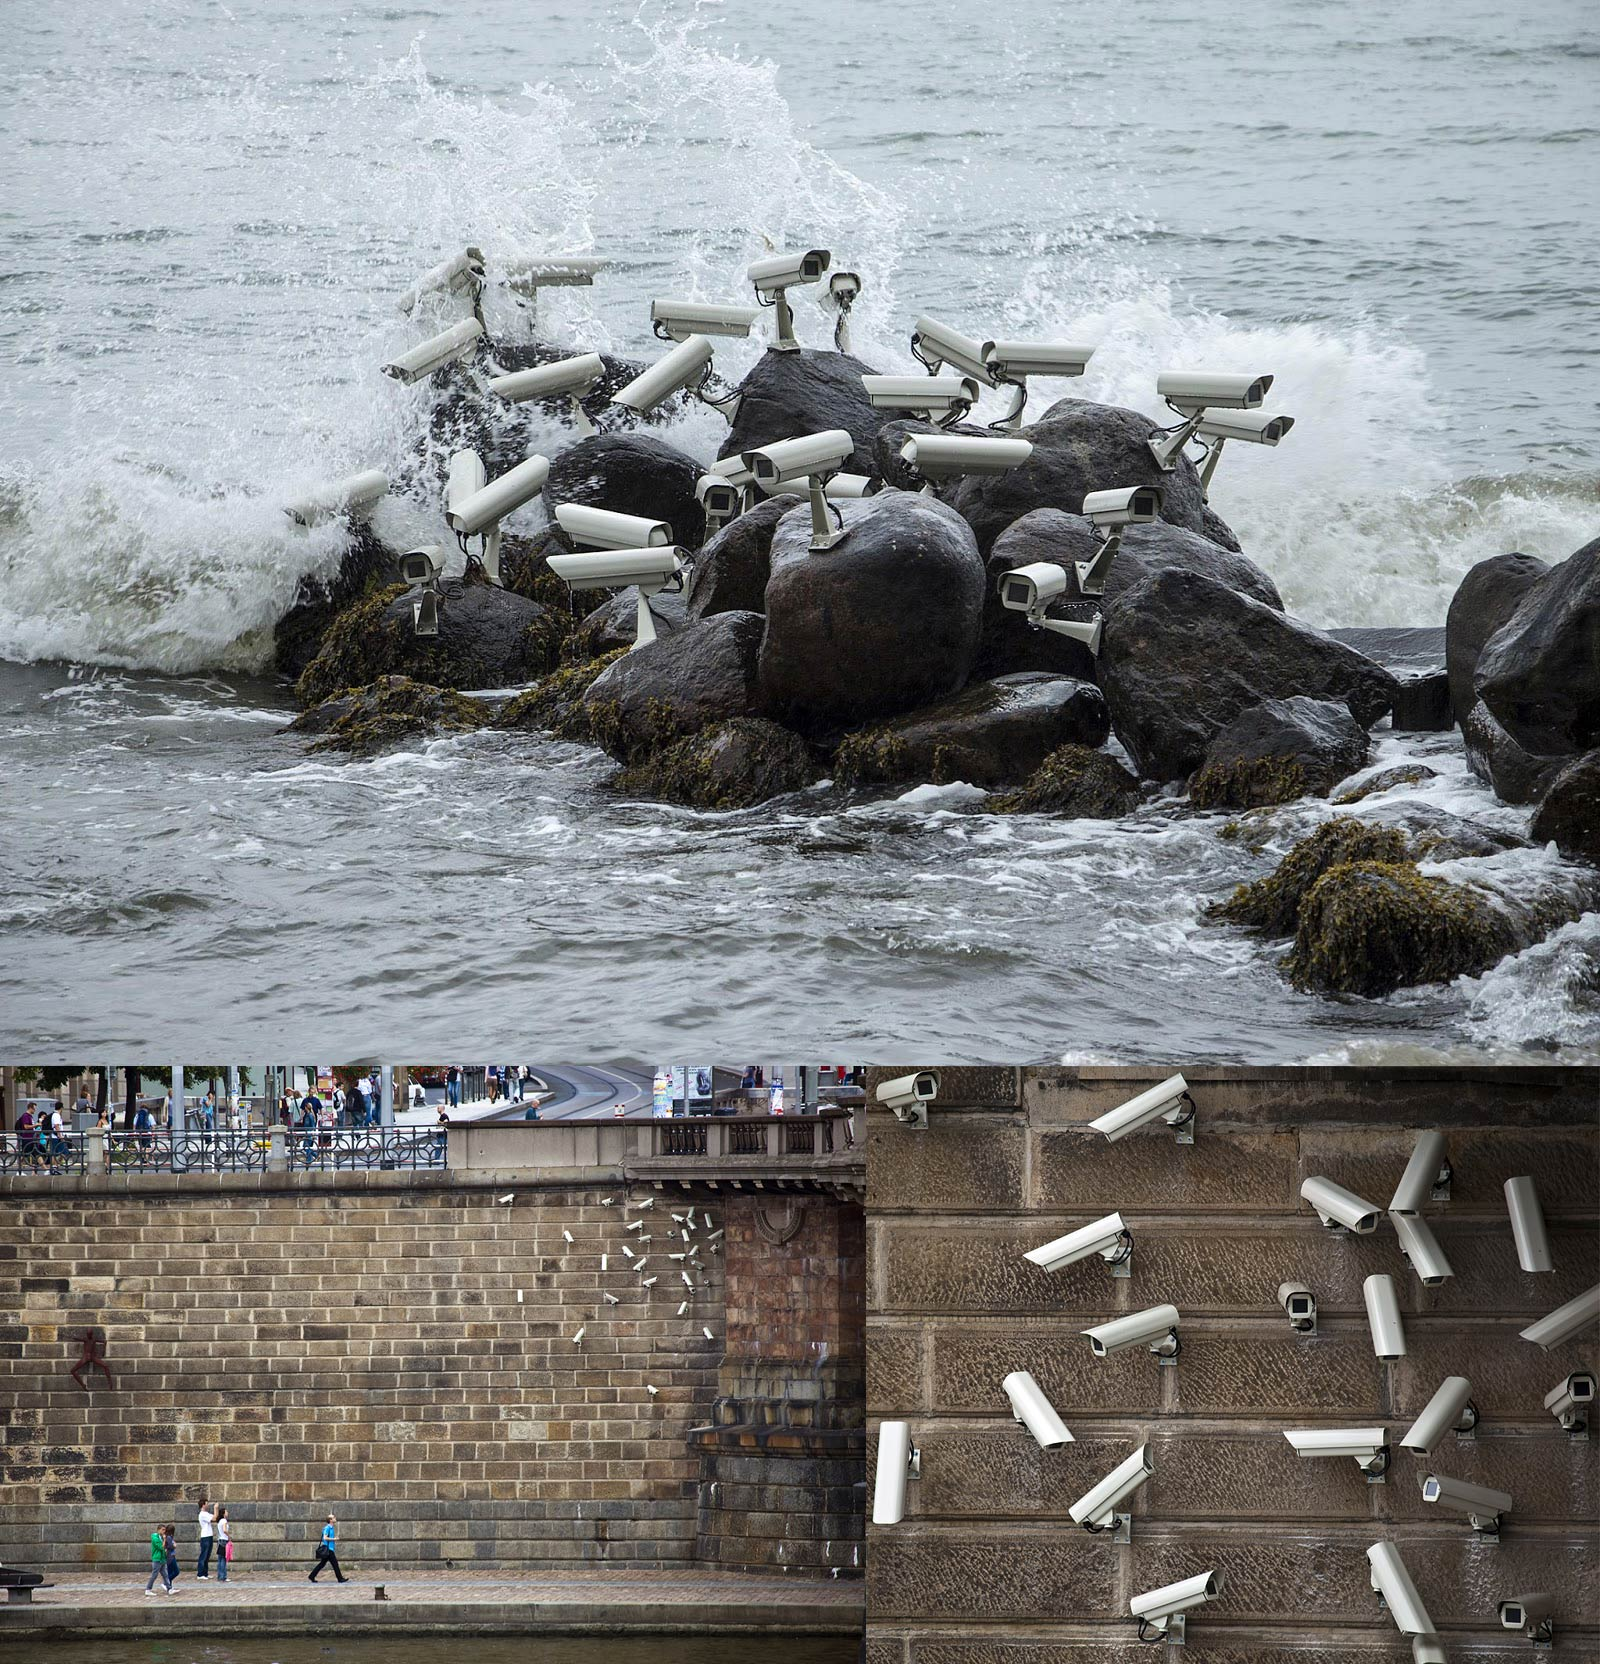 Surveillance cameras placed on a rock in the middle of the sea, like seagulls, and on a wall, like pigeons